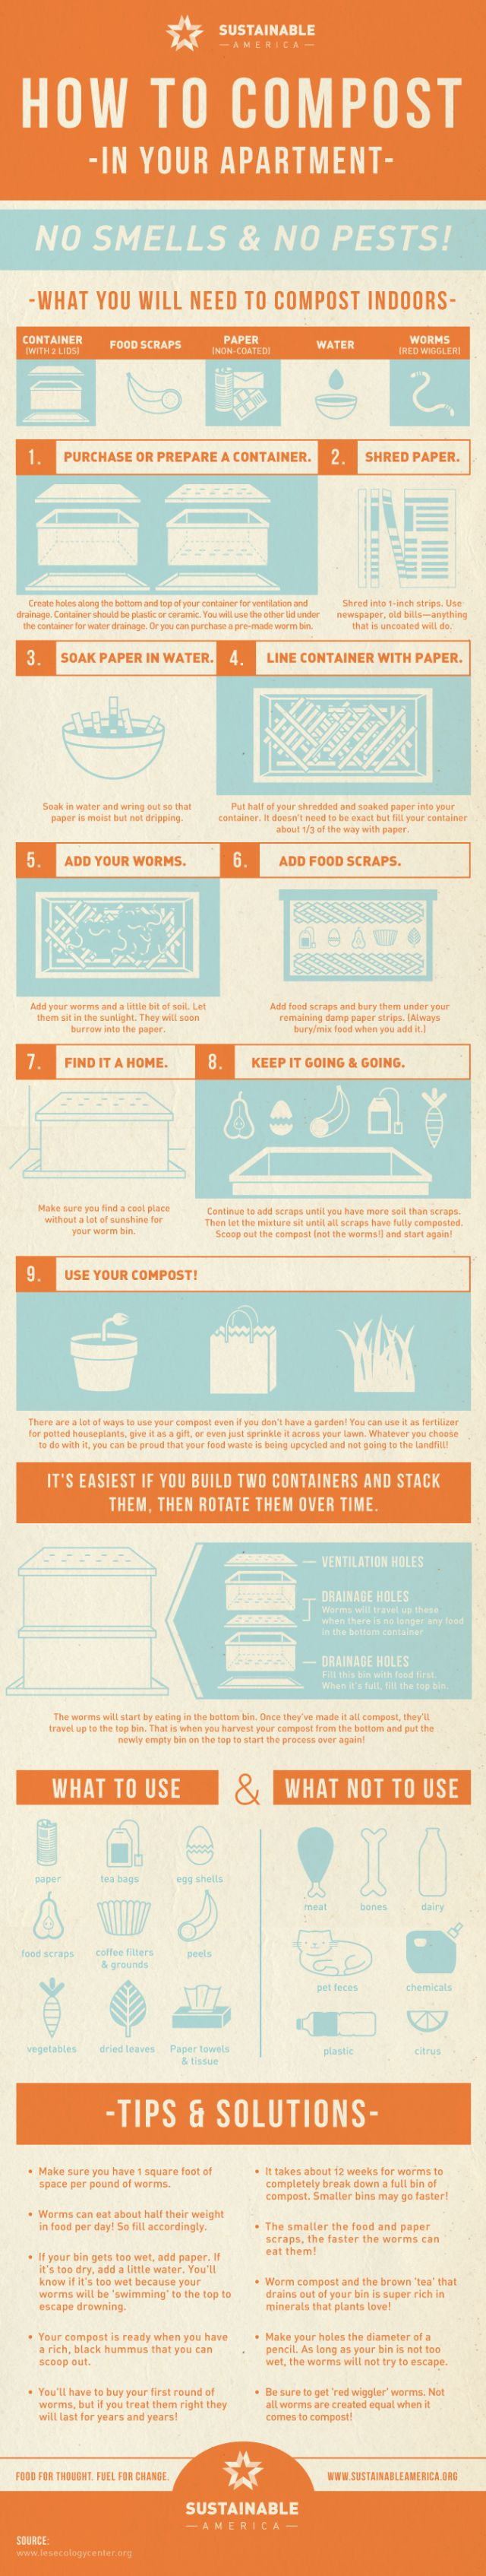 How to compost indoors: no smells, no pests! #compostingindoors #sustainability